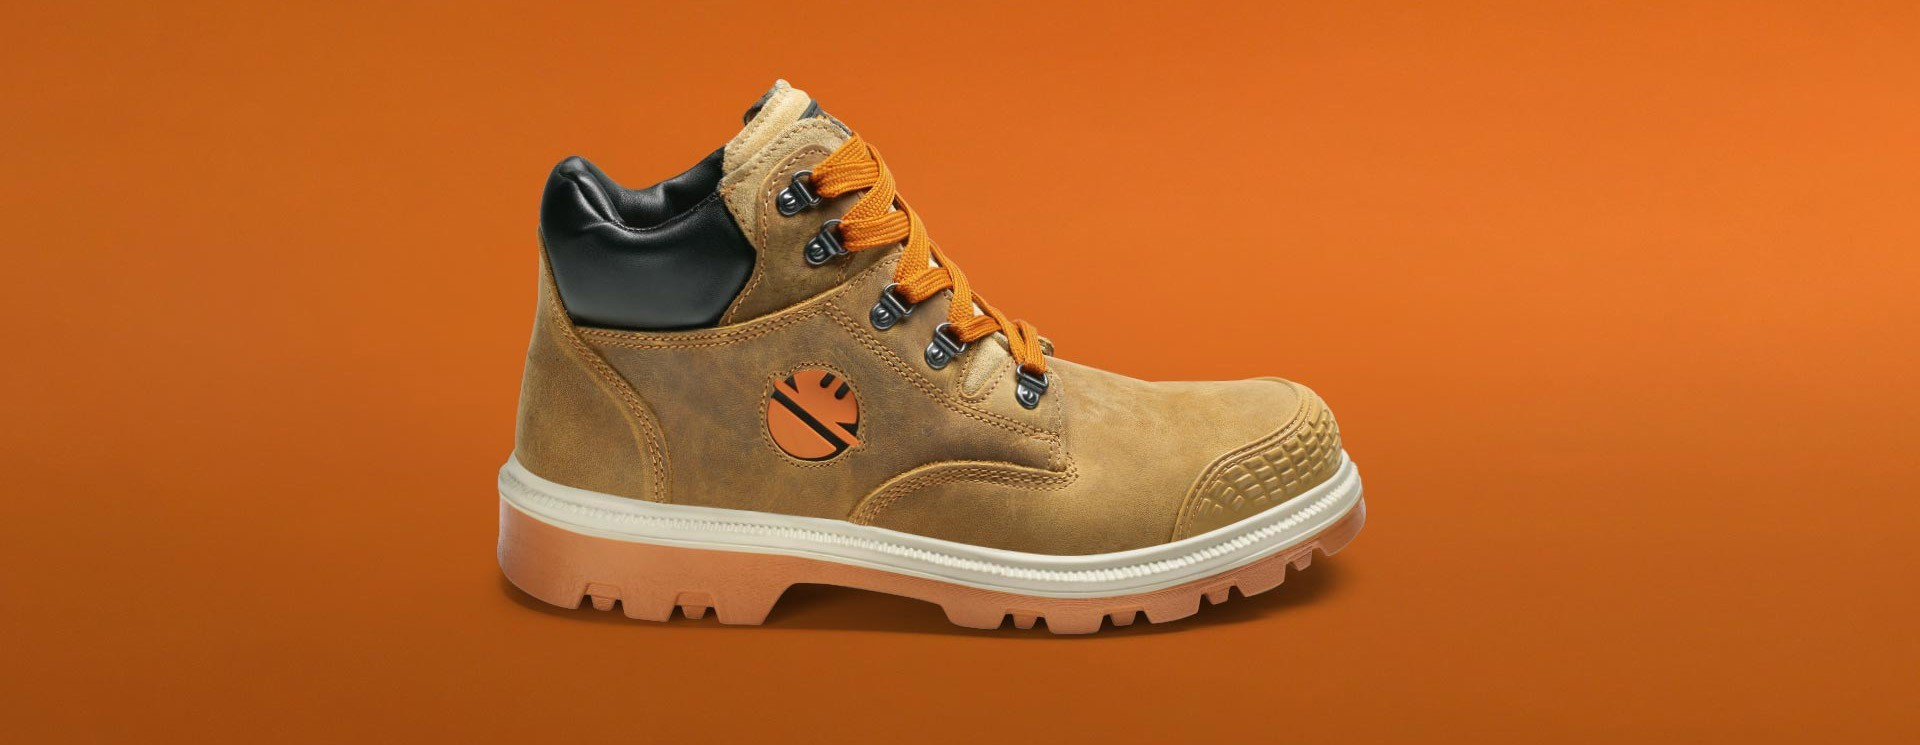 Digger - Safety Shoes and Work Boots | Dike